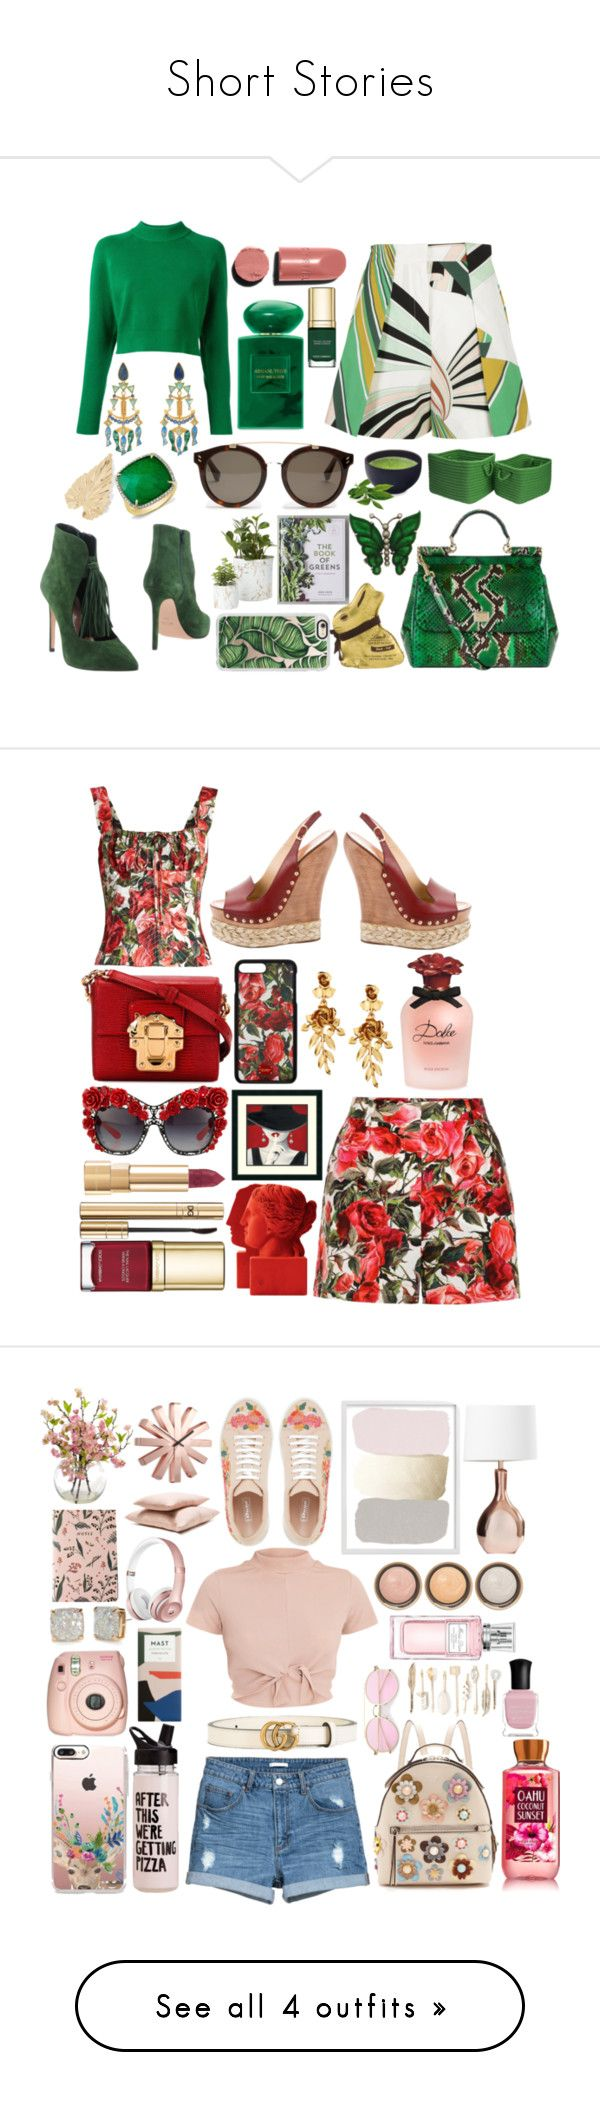 Short Stories by pulseofthematter on Polyvore featuring polyvore fashion style DKNY Emilio Pucci Anna F. Dolce&Gabbana Tory Burch Anne Sisteron Giorgio Armani Chanel STELLA McCARTNEY Home Decorators Collection Casetify Lelet NY Jona Lindt clothing Oscar de la Renta Sophia Gucci Fendi ban.do Fuji Kate Spade Hawkins Umbra By Terry Christian Dior Red Camel Deborah Lippmann MANGO Cole Haan NEST Jewelry Victoria Beckham NOVICA Luminarc H&M Elizabeth and James